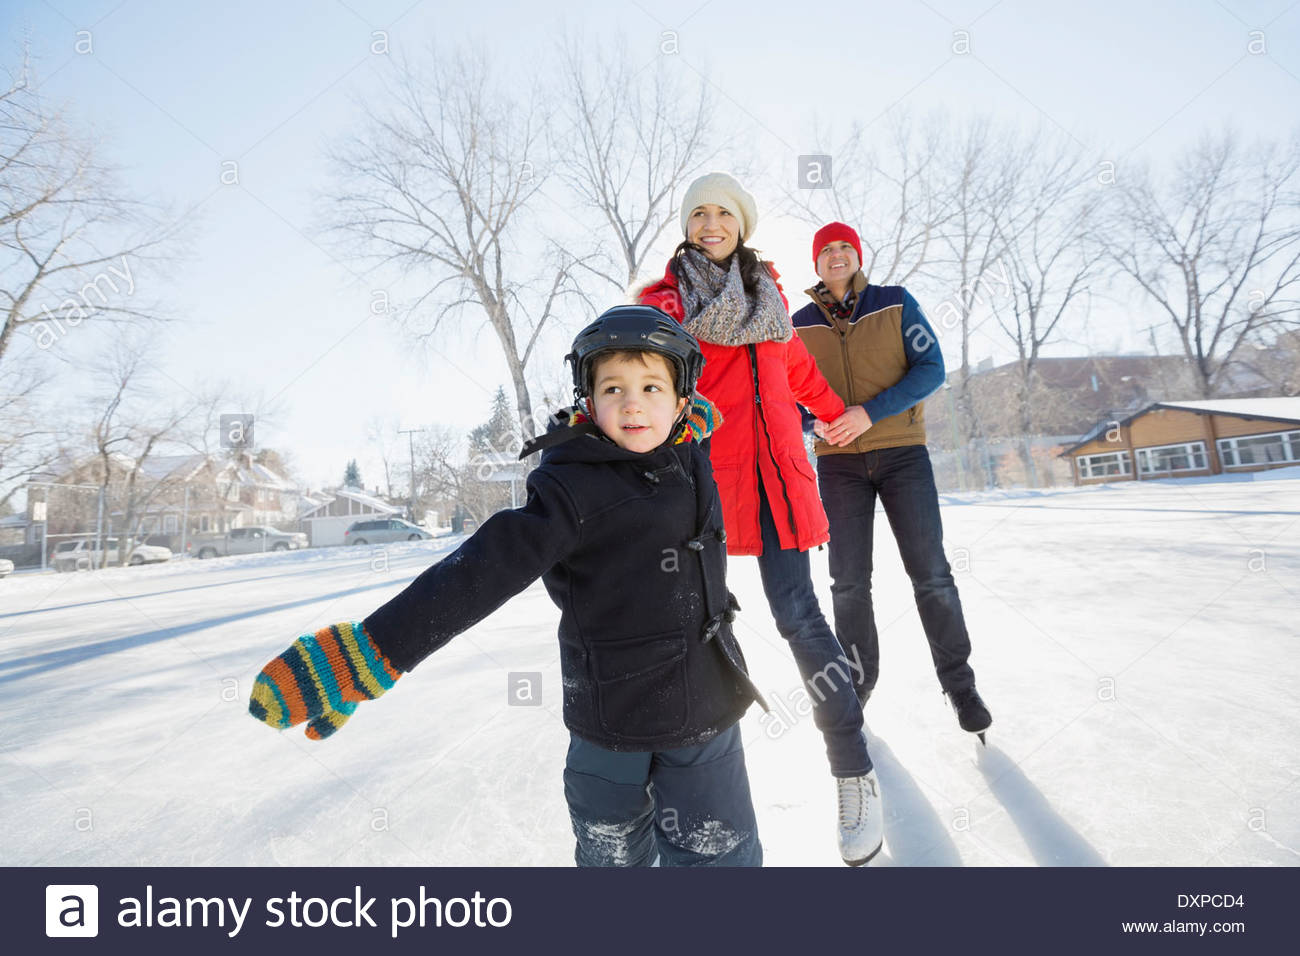 Boy ice-skating with parents on outdoor rink - Stock Image